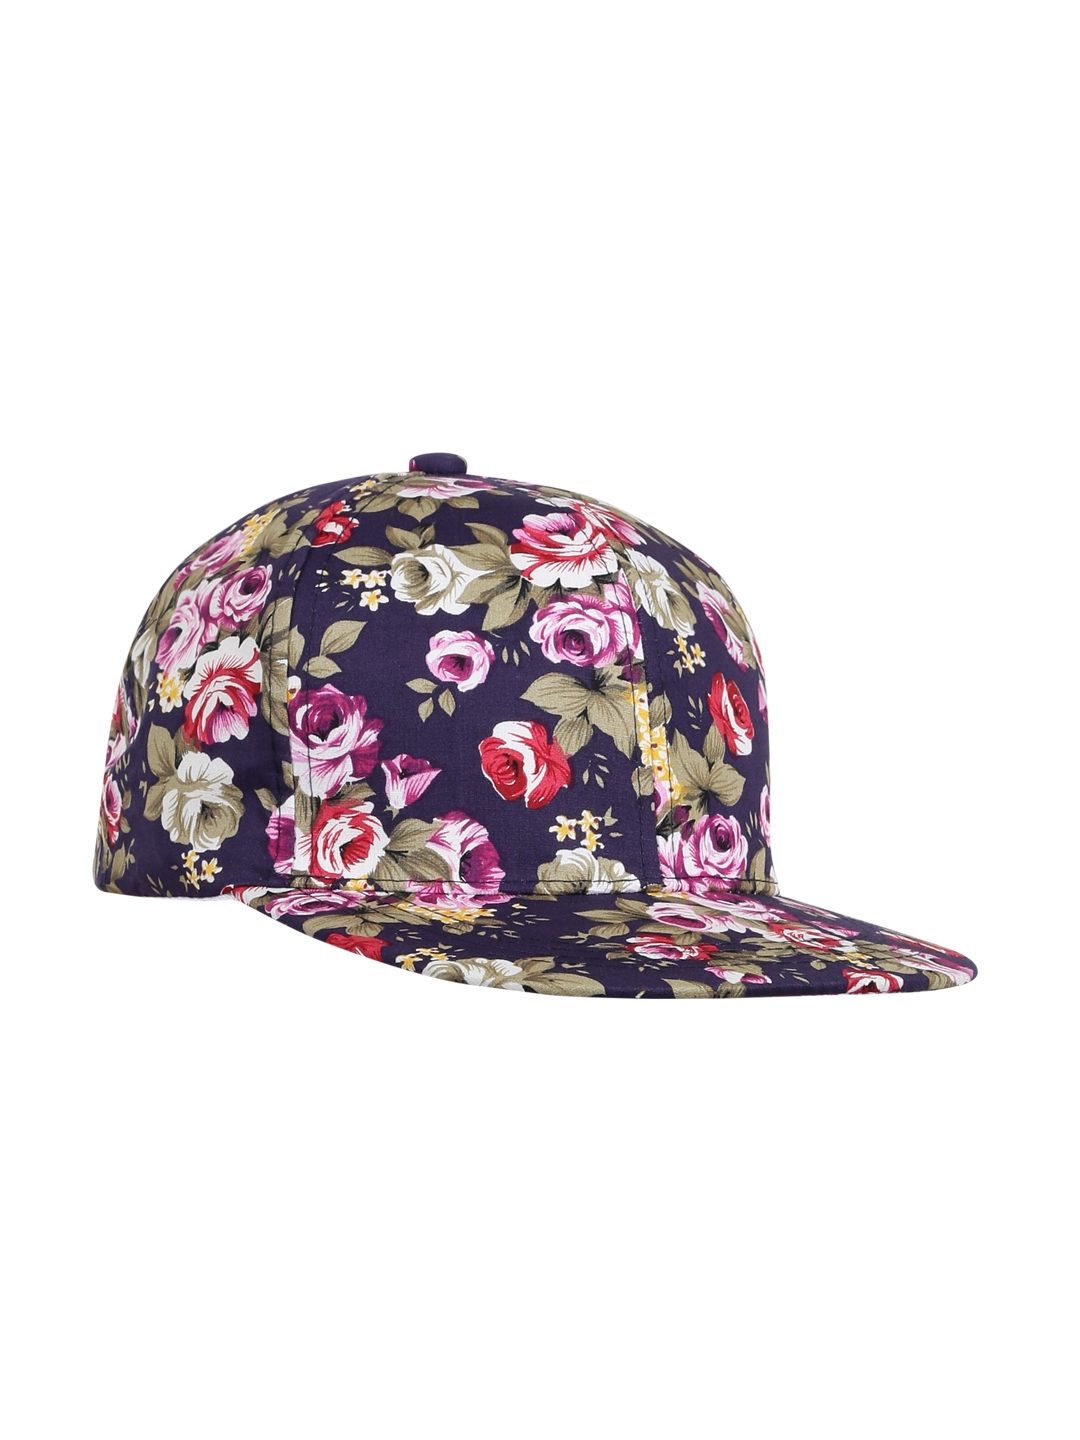 e8e7ef2a1e7fb8 Buy Ayesha Women Multicoloured Floral Print Cap - Caps for Women ...